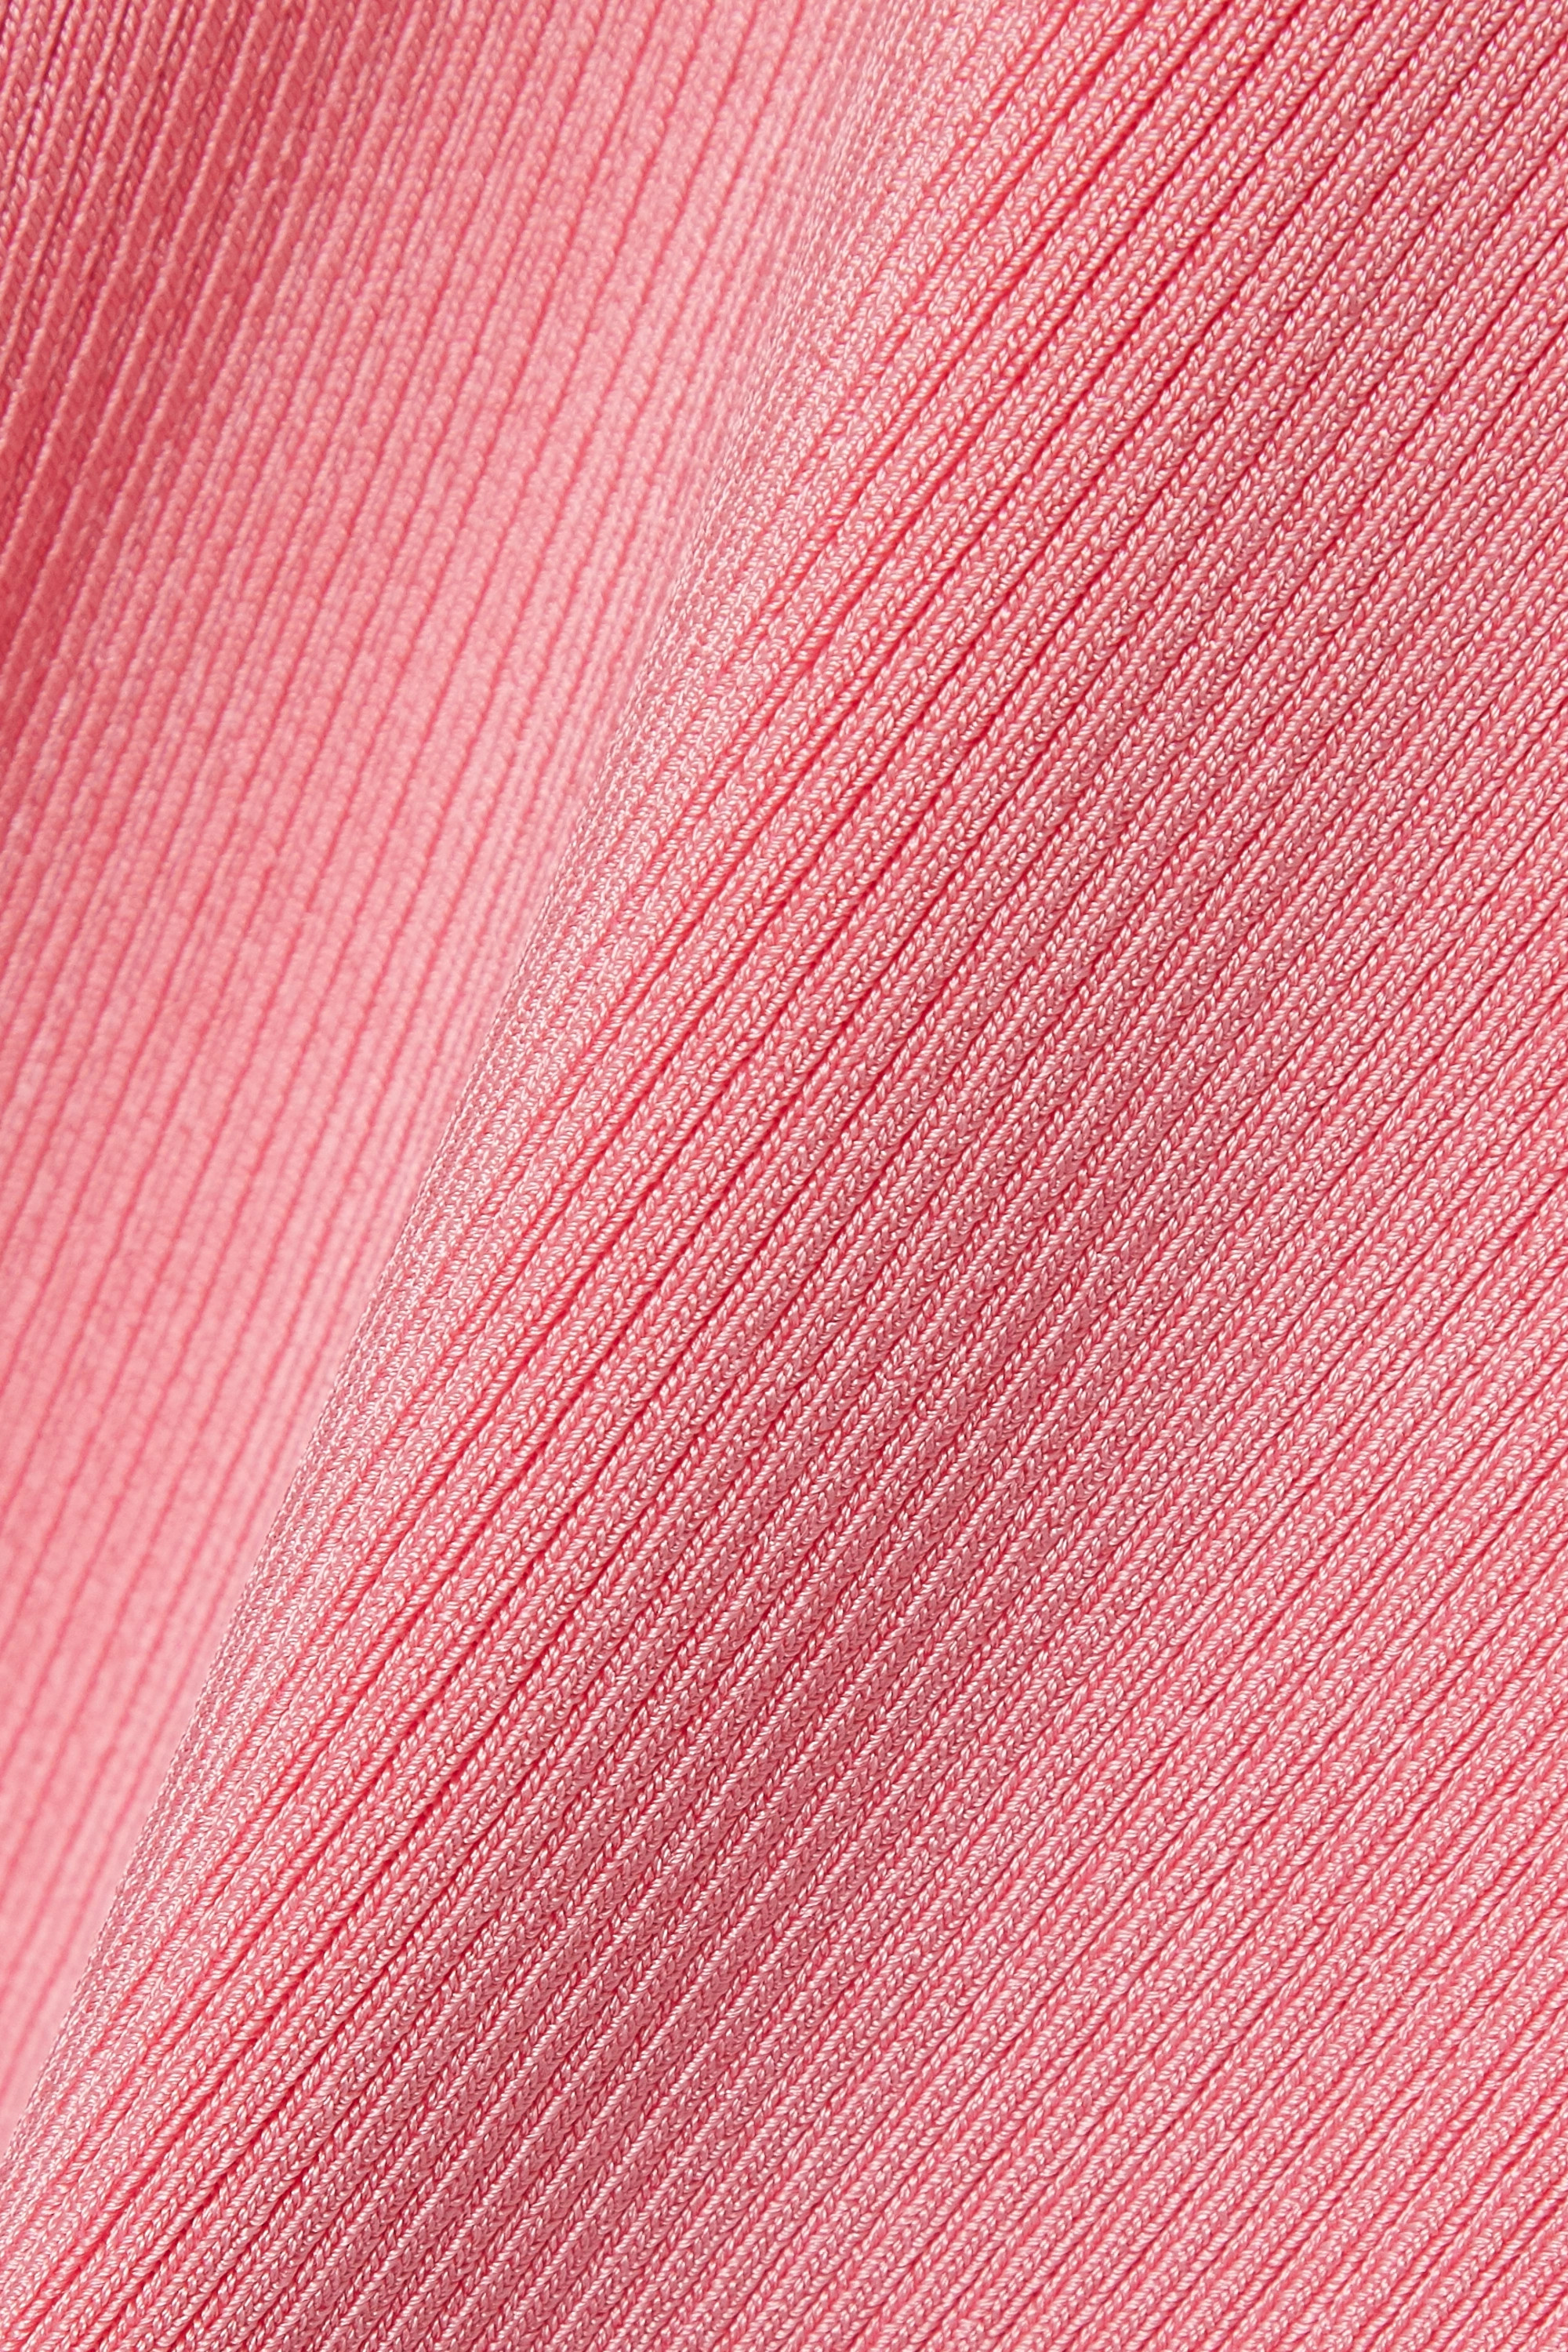 Baby Pink Ribbed-knit Top | Peter Do